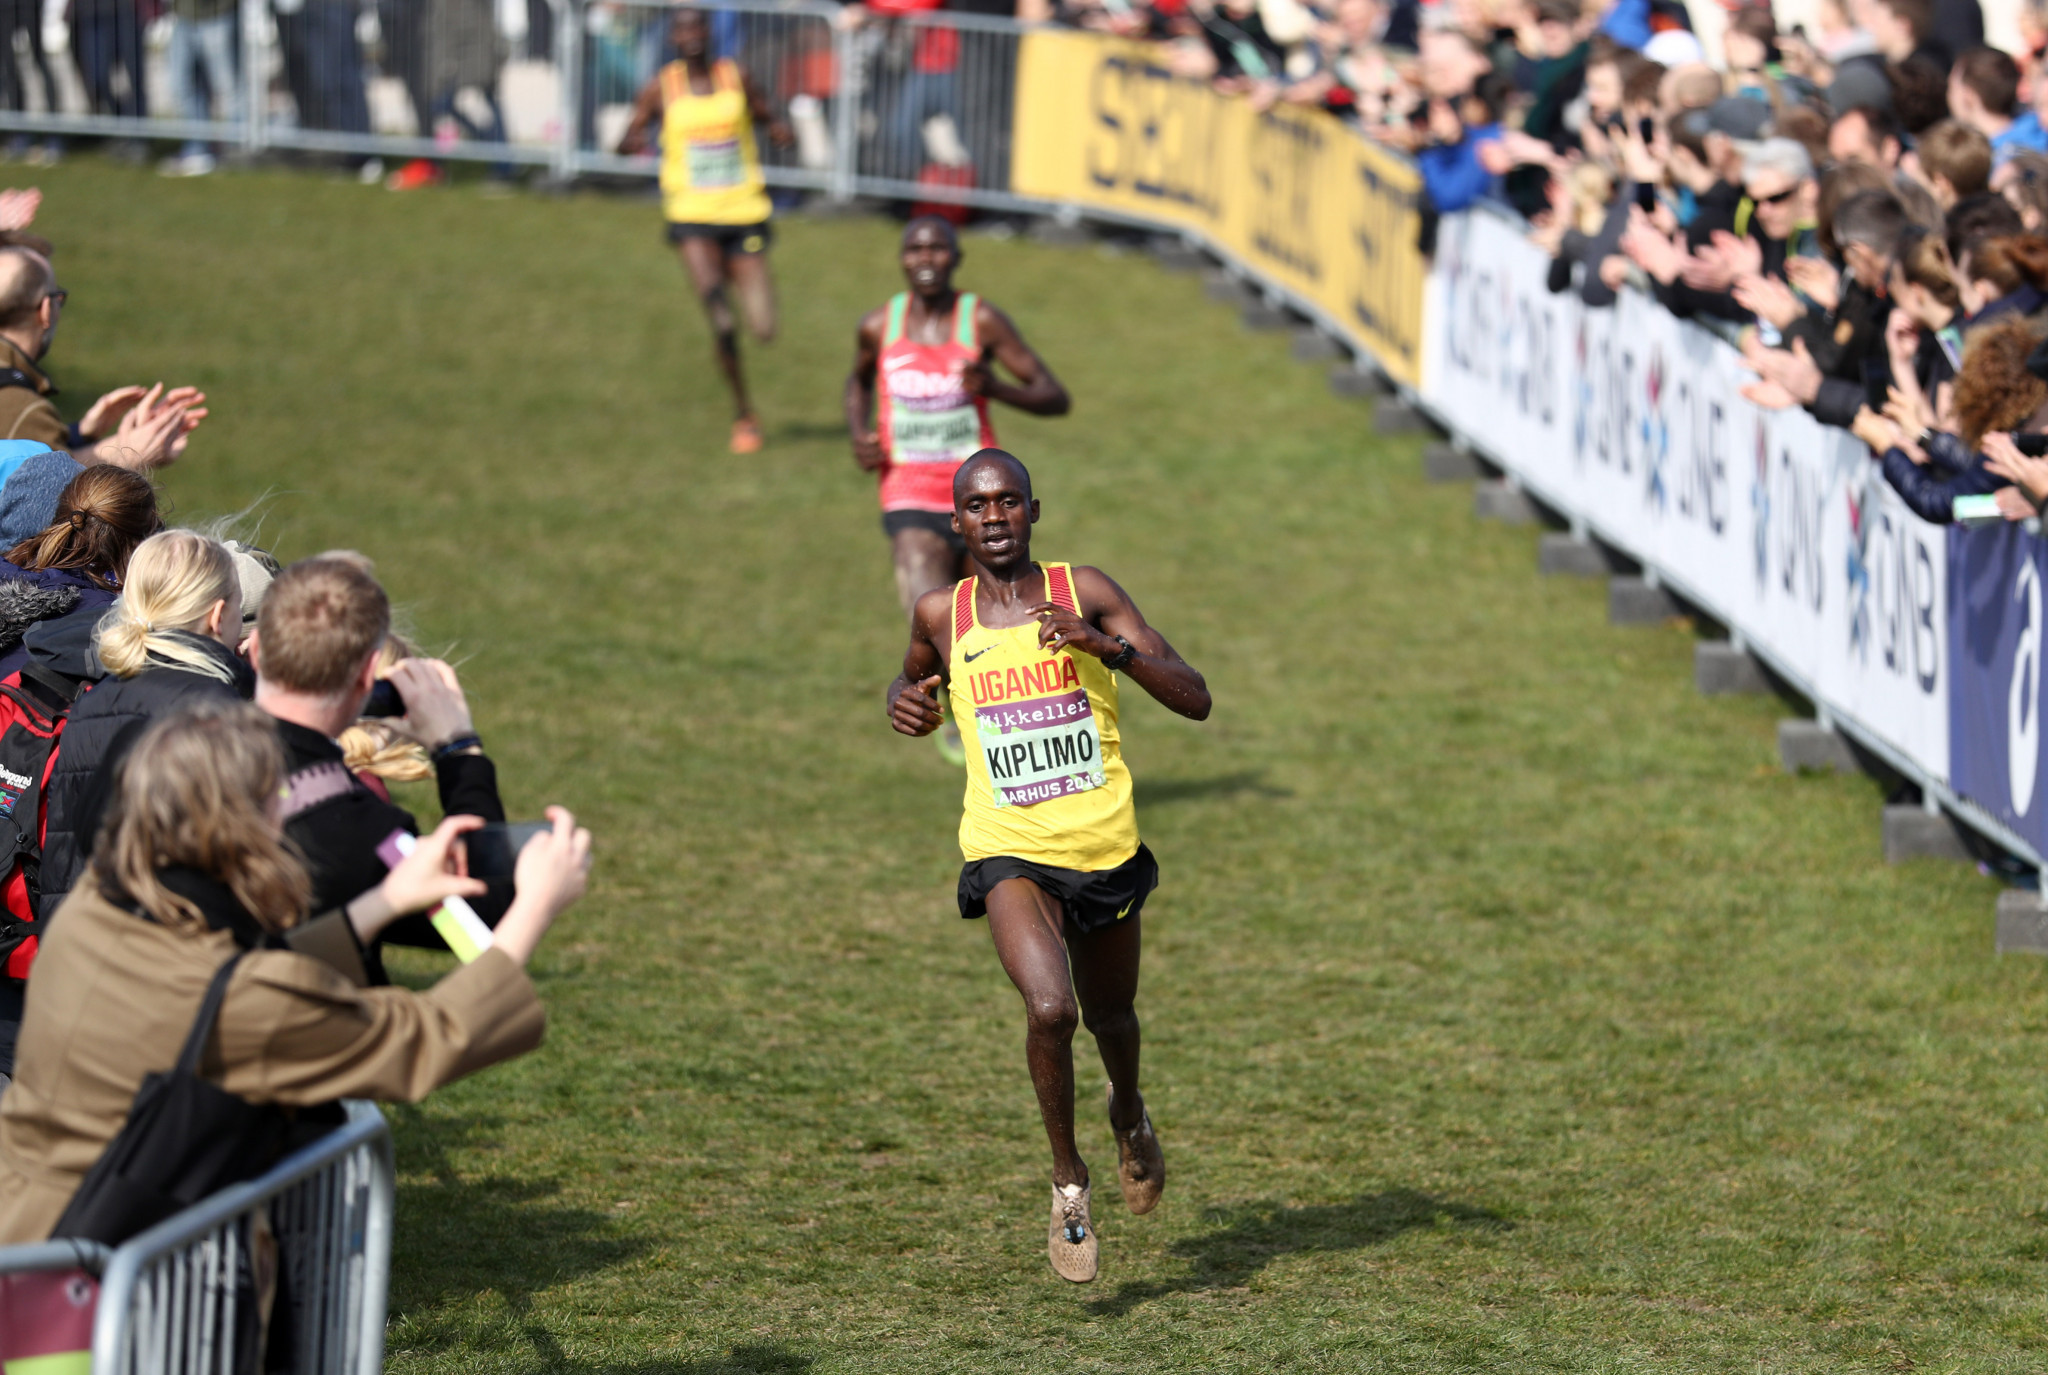 Sport Event Denmark chief executive hails success of World Cross-Country Championships in Aarhus